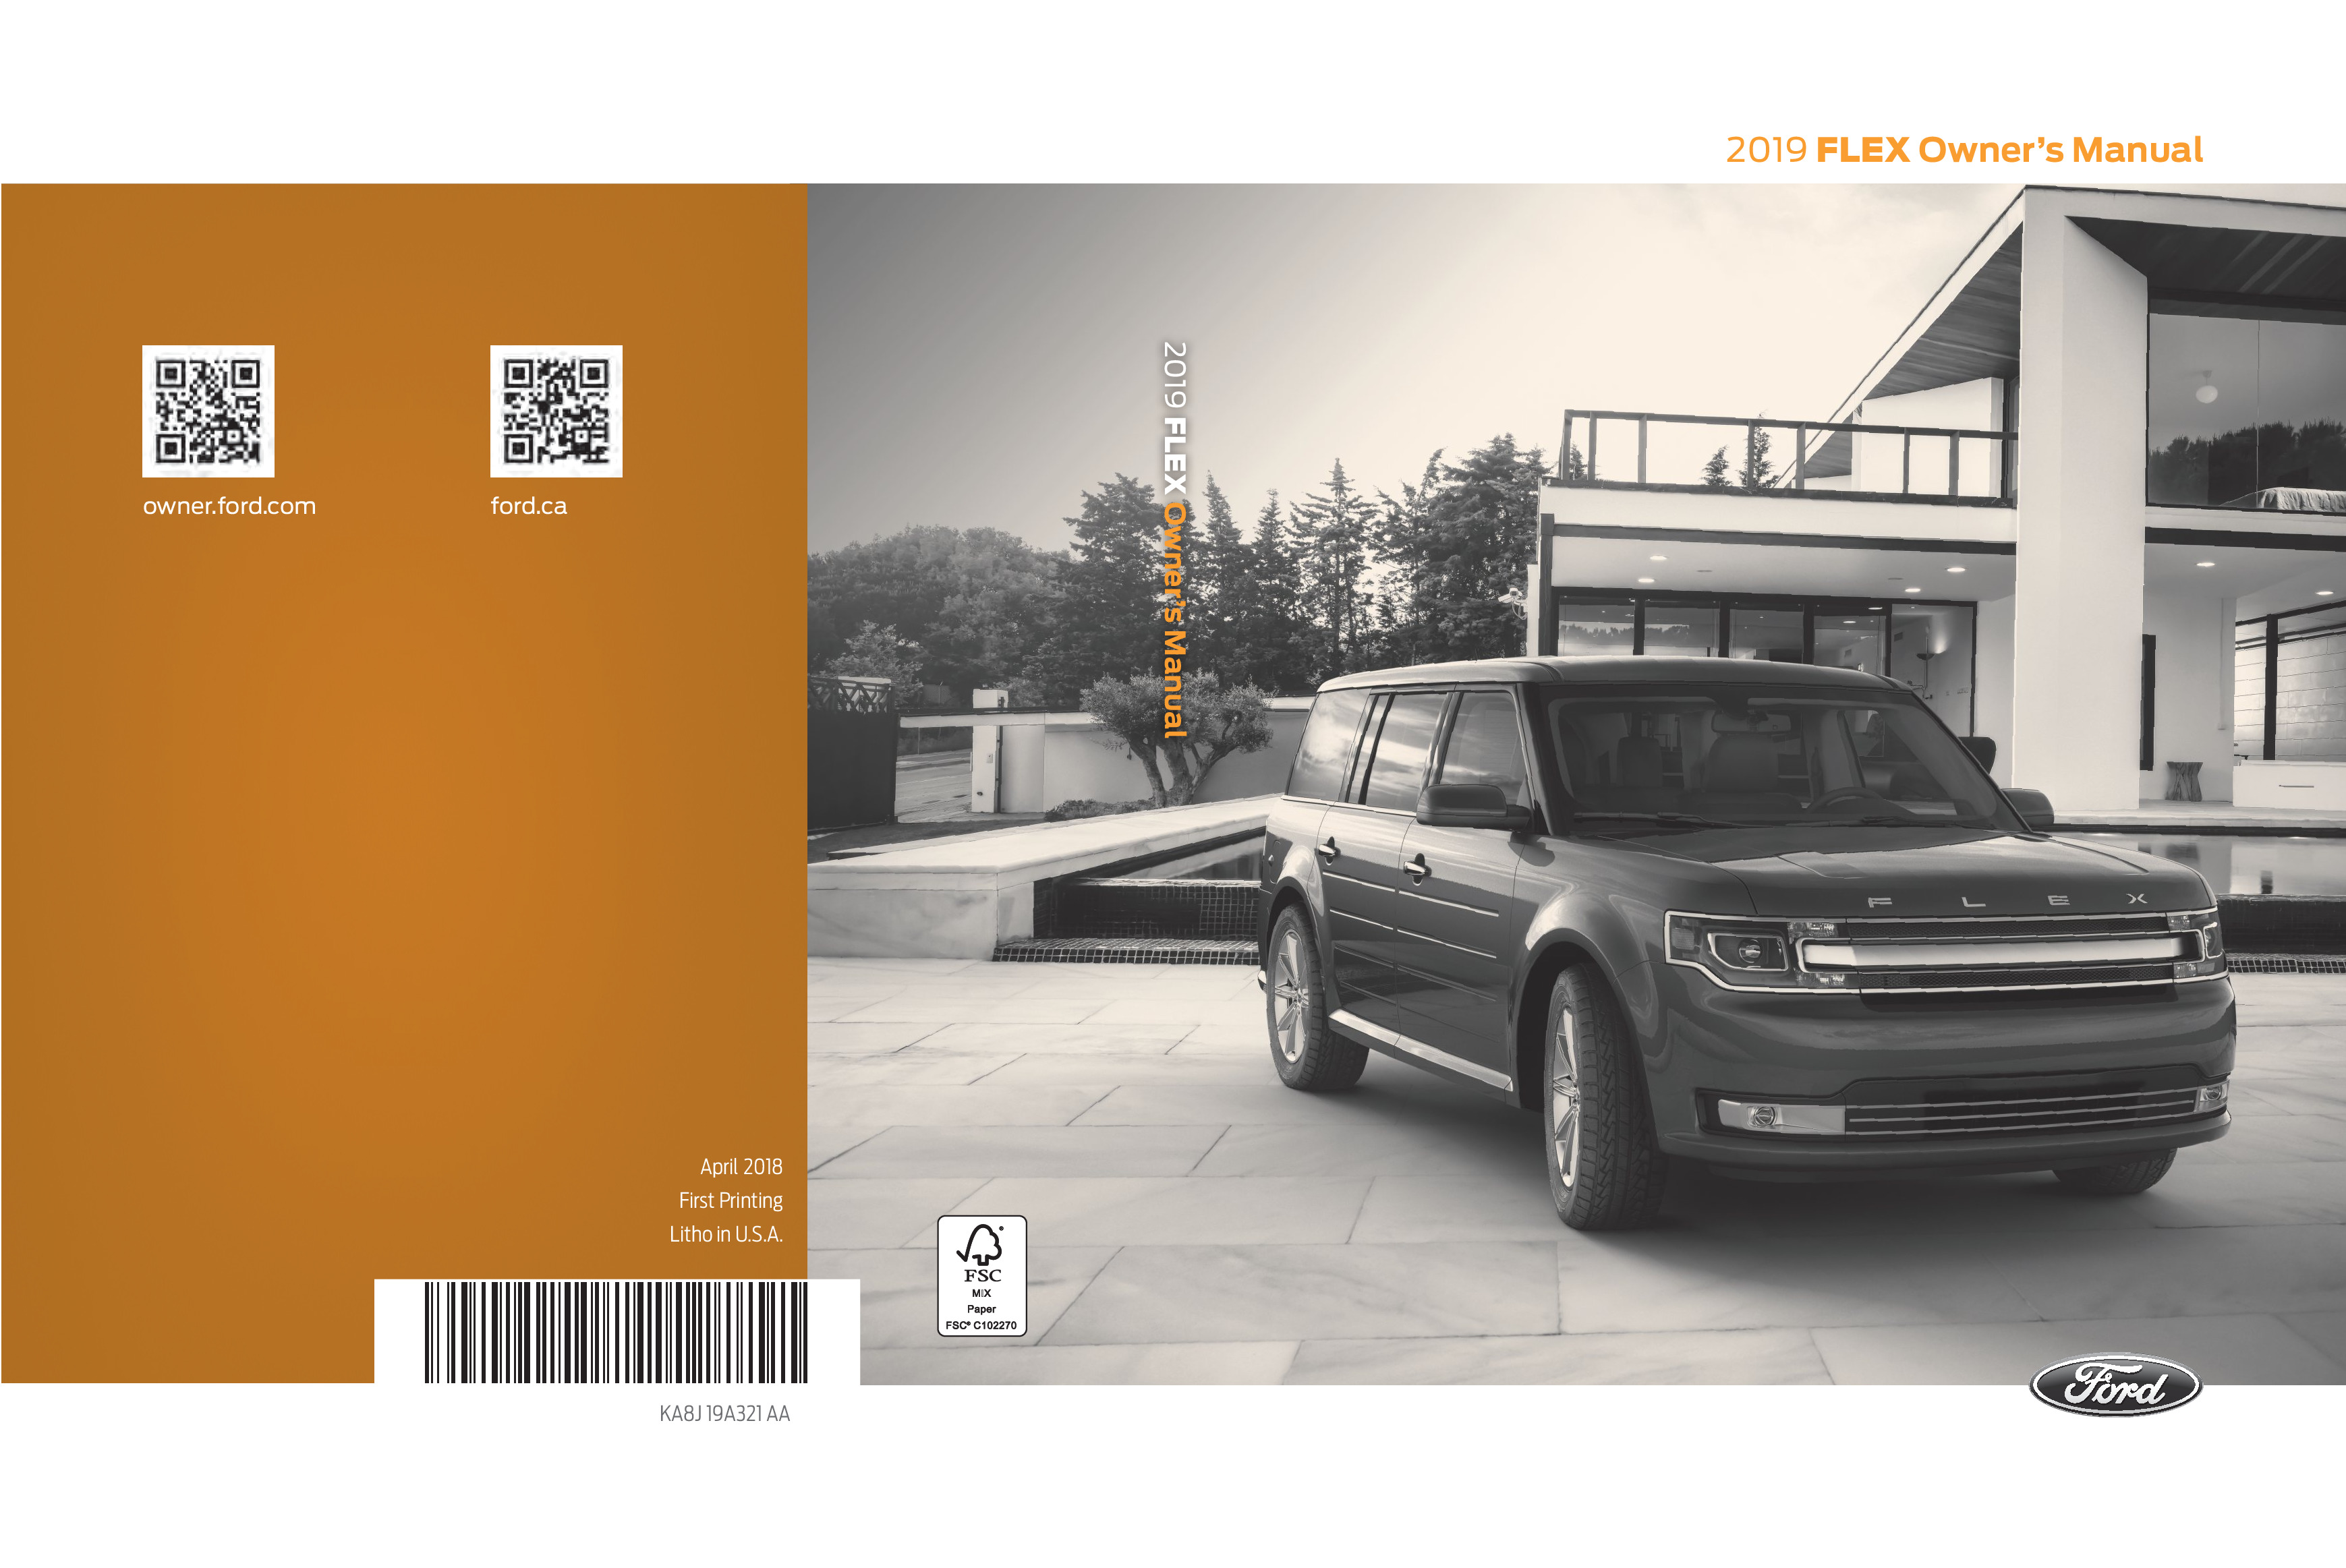 2019 Ford Flex owners manual